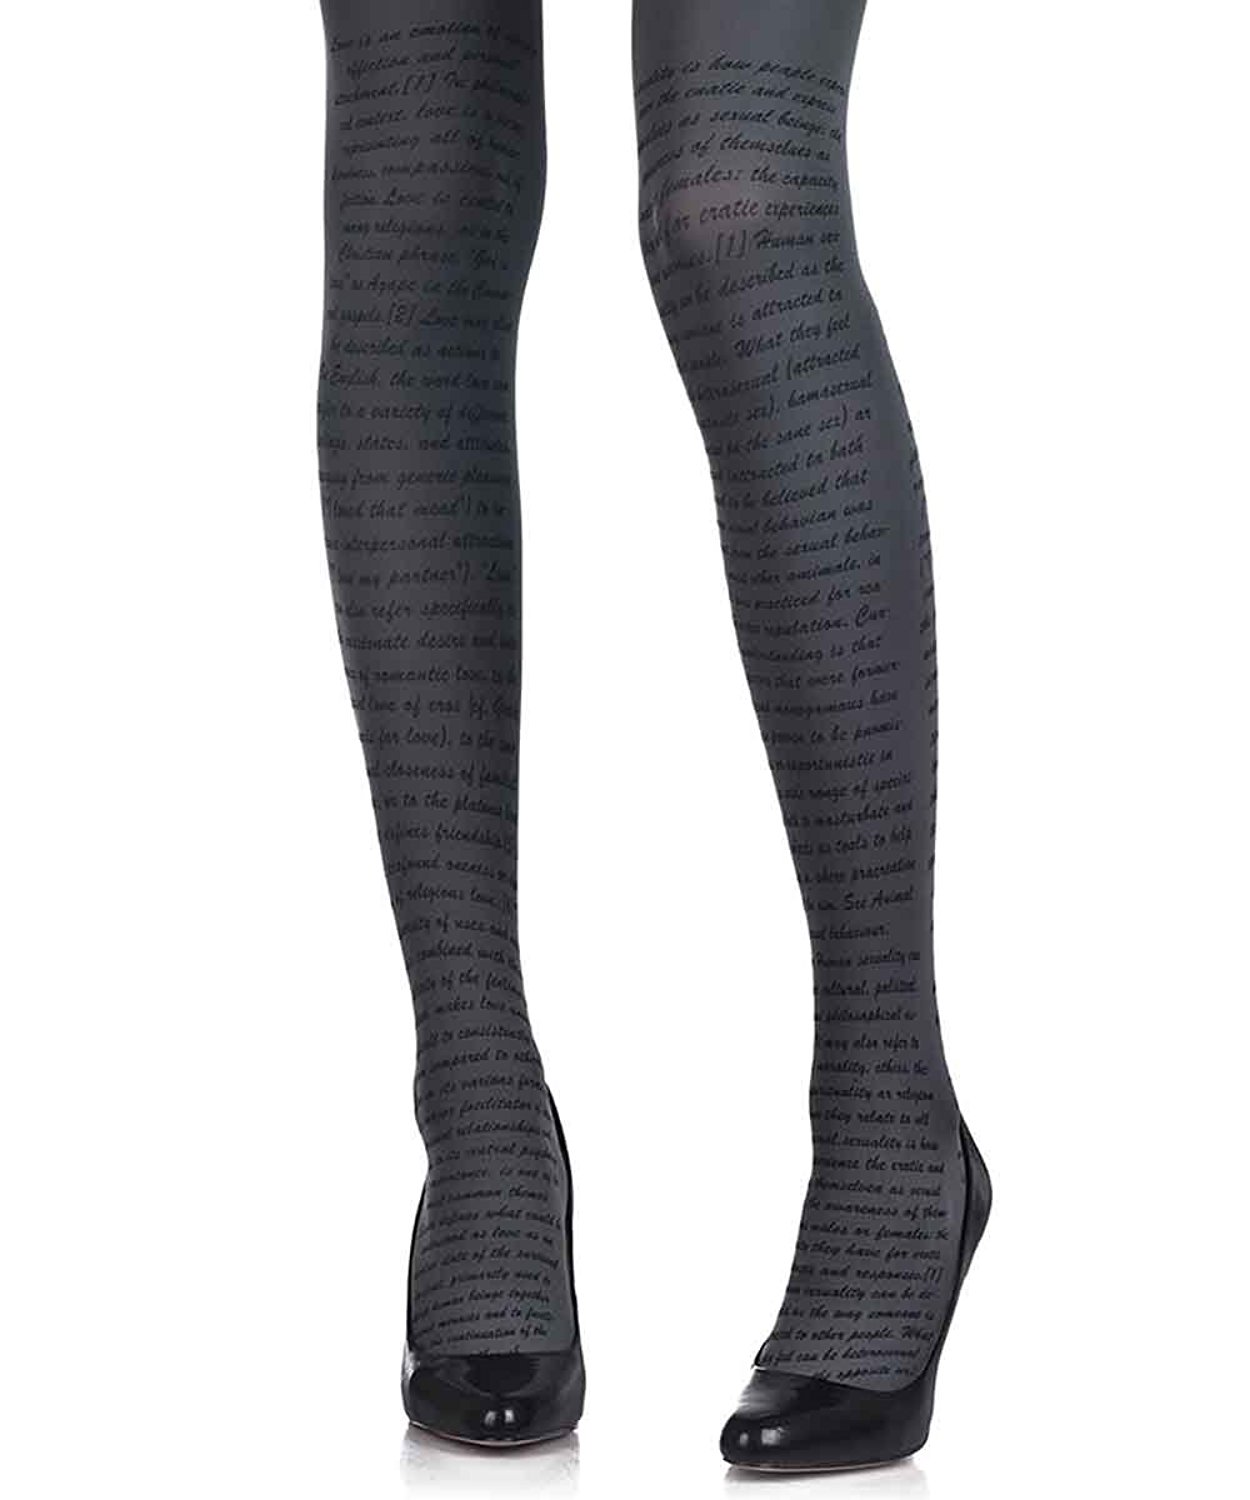 9f11fddf7 Get Quotations · Love Text Printed Tights for Women Grey Opaque 120 denier  by Zohara Tights